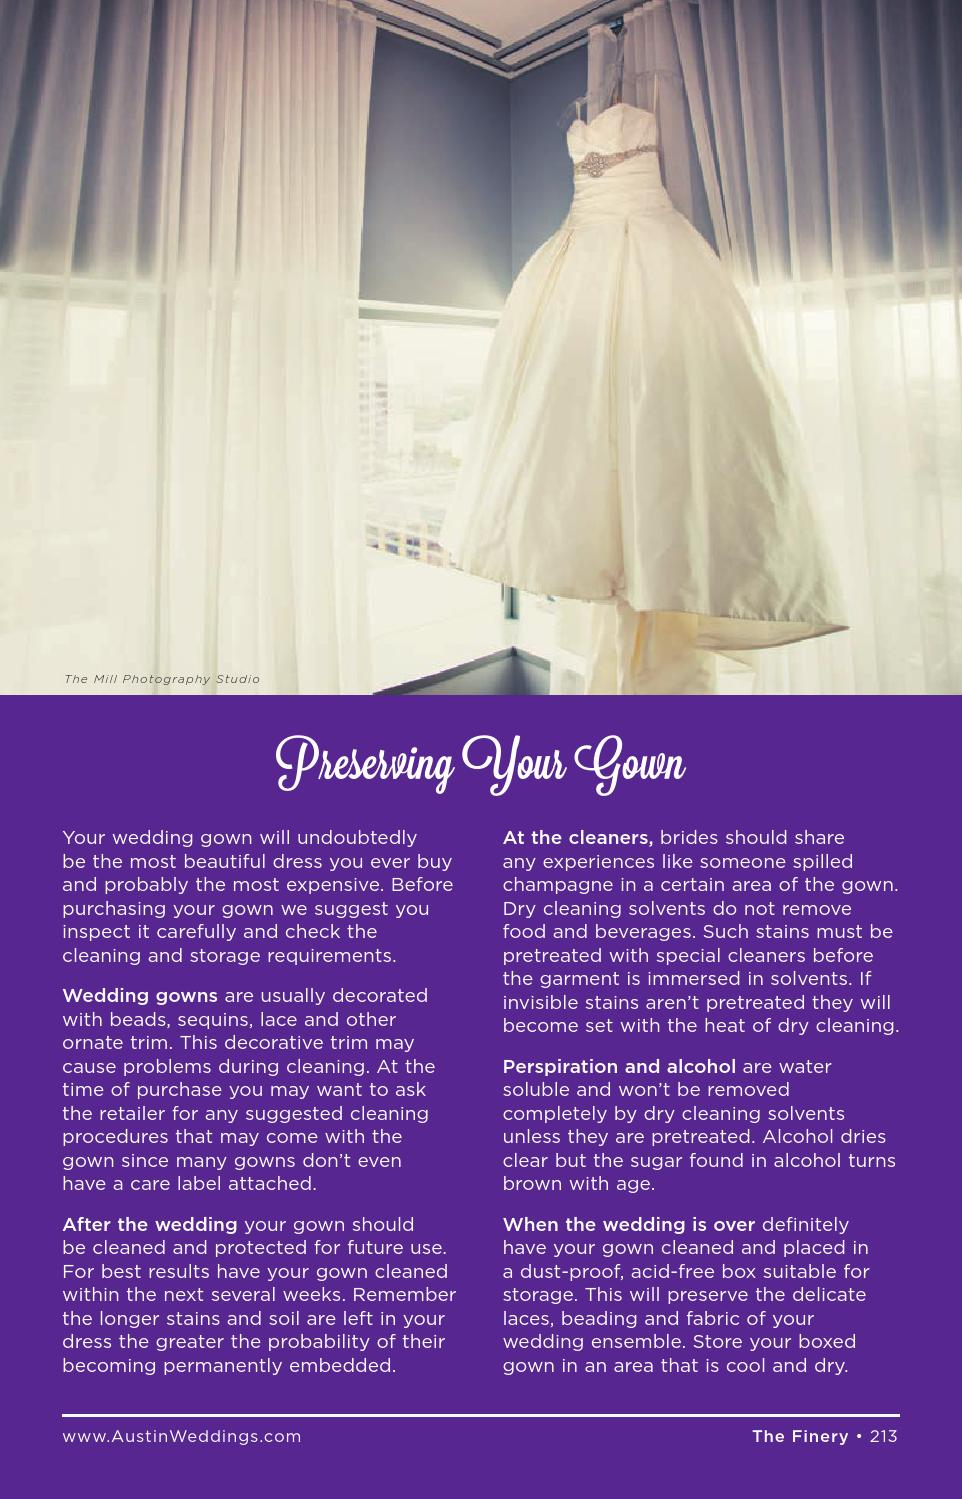 Austin S Wedding Guide By Texas Wedding Guide Issuu,Indian Ladies Dresses For Wedding Party